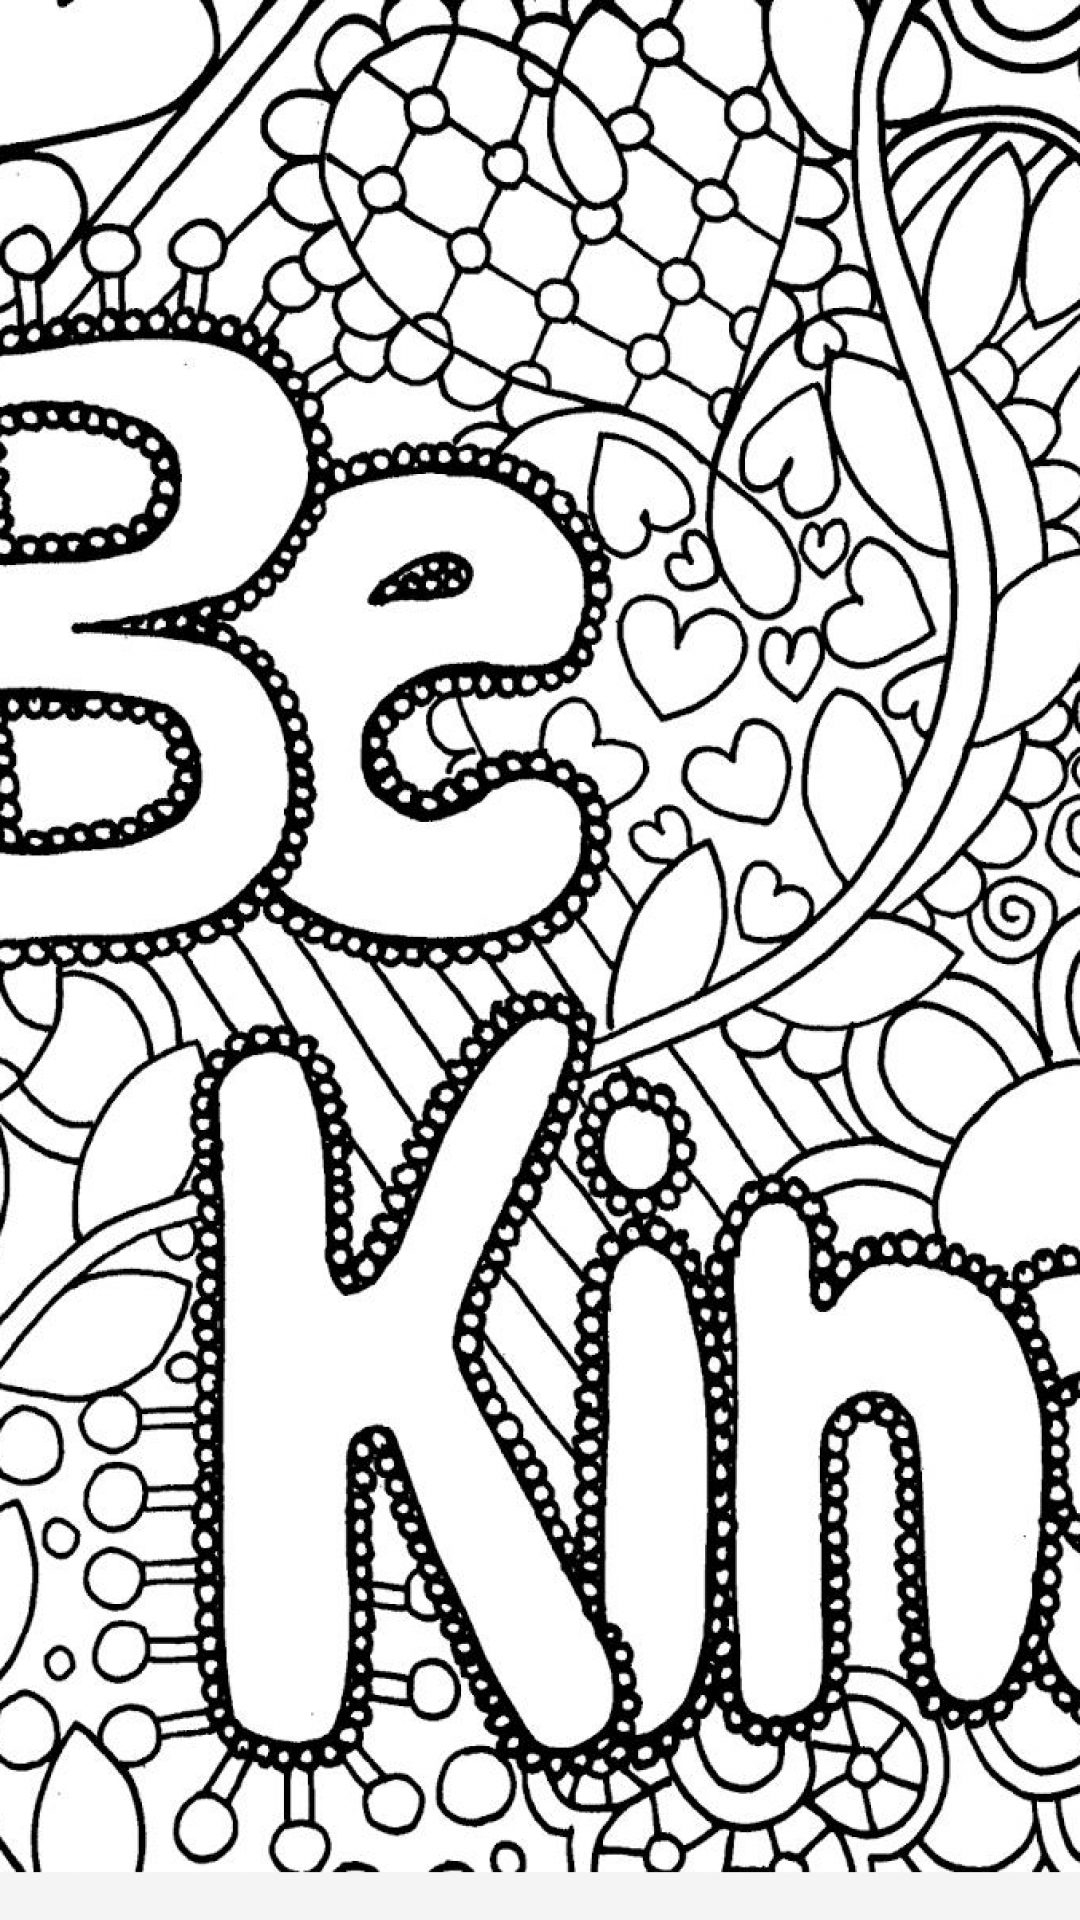 1080x1920 Best Of Hard Colouring Pages For Teenagers Color Bros